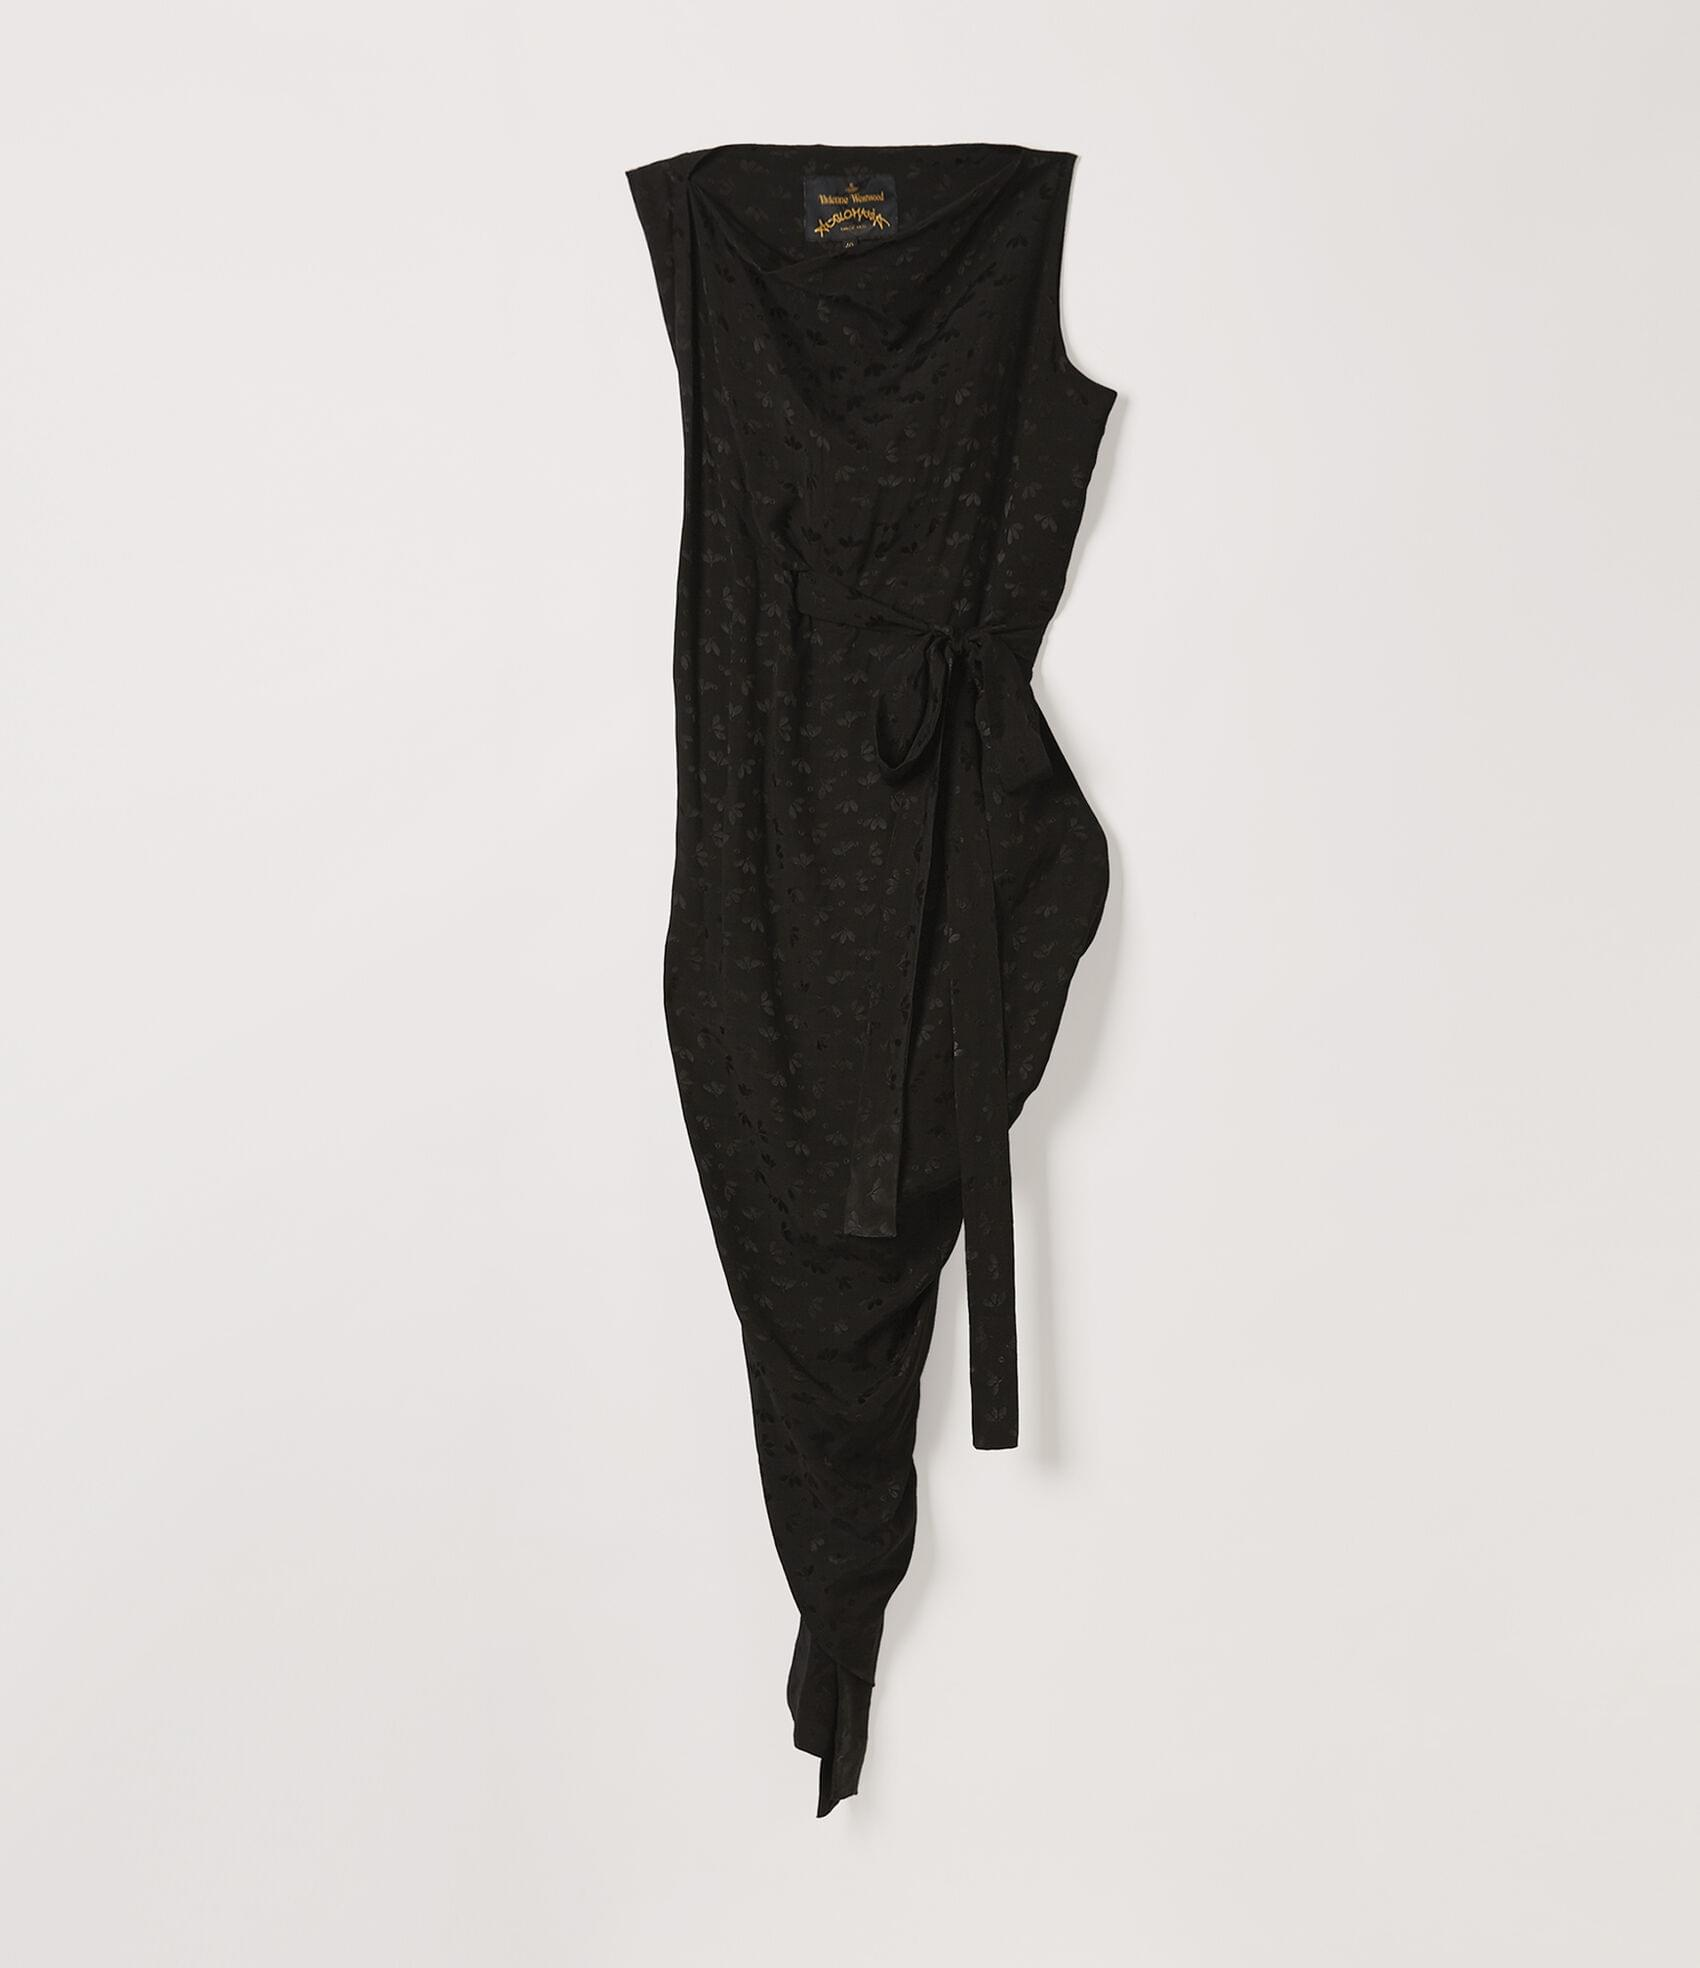 Vivienne Westwood VIAN DRESS BLACK